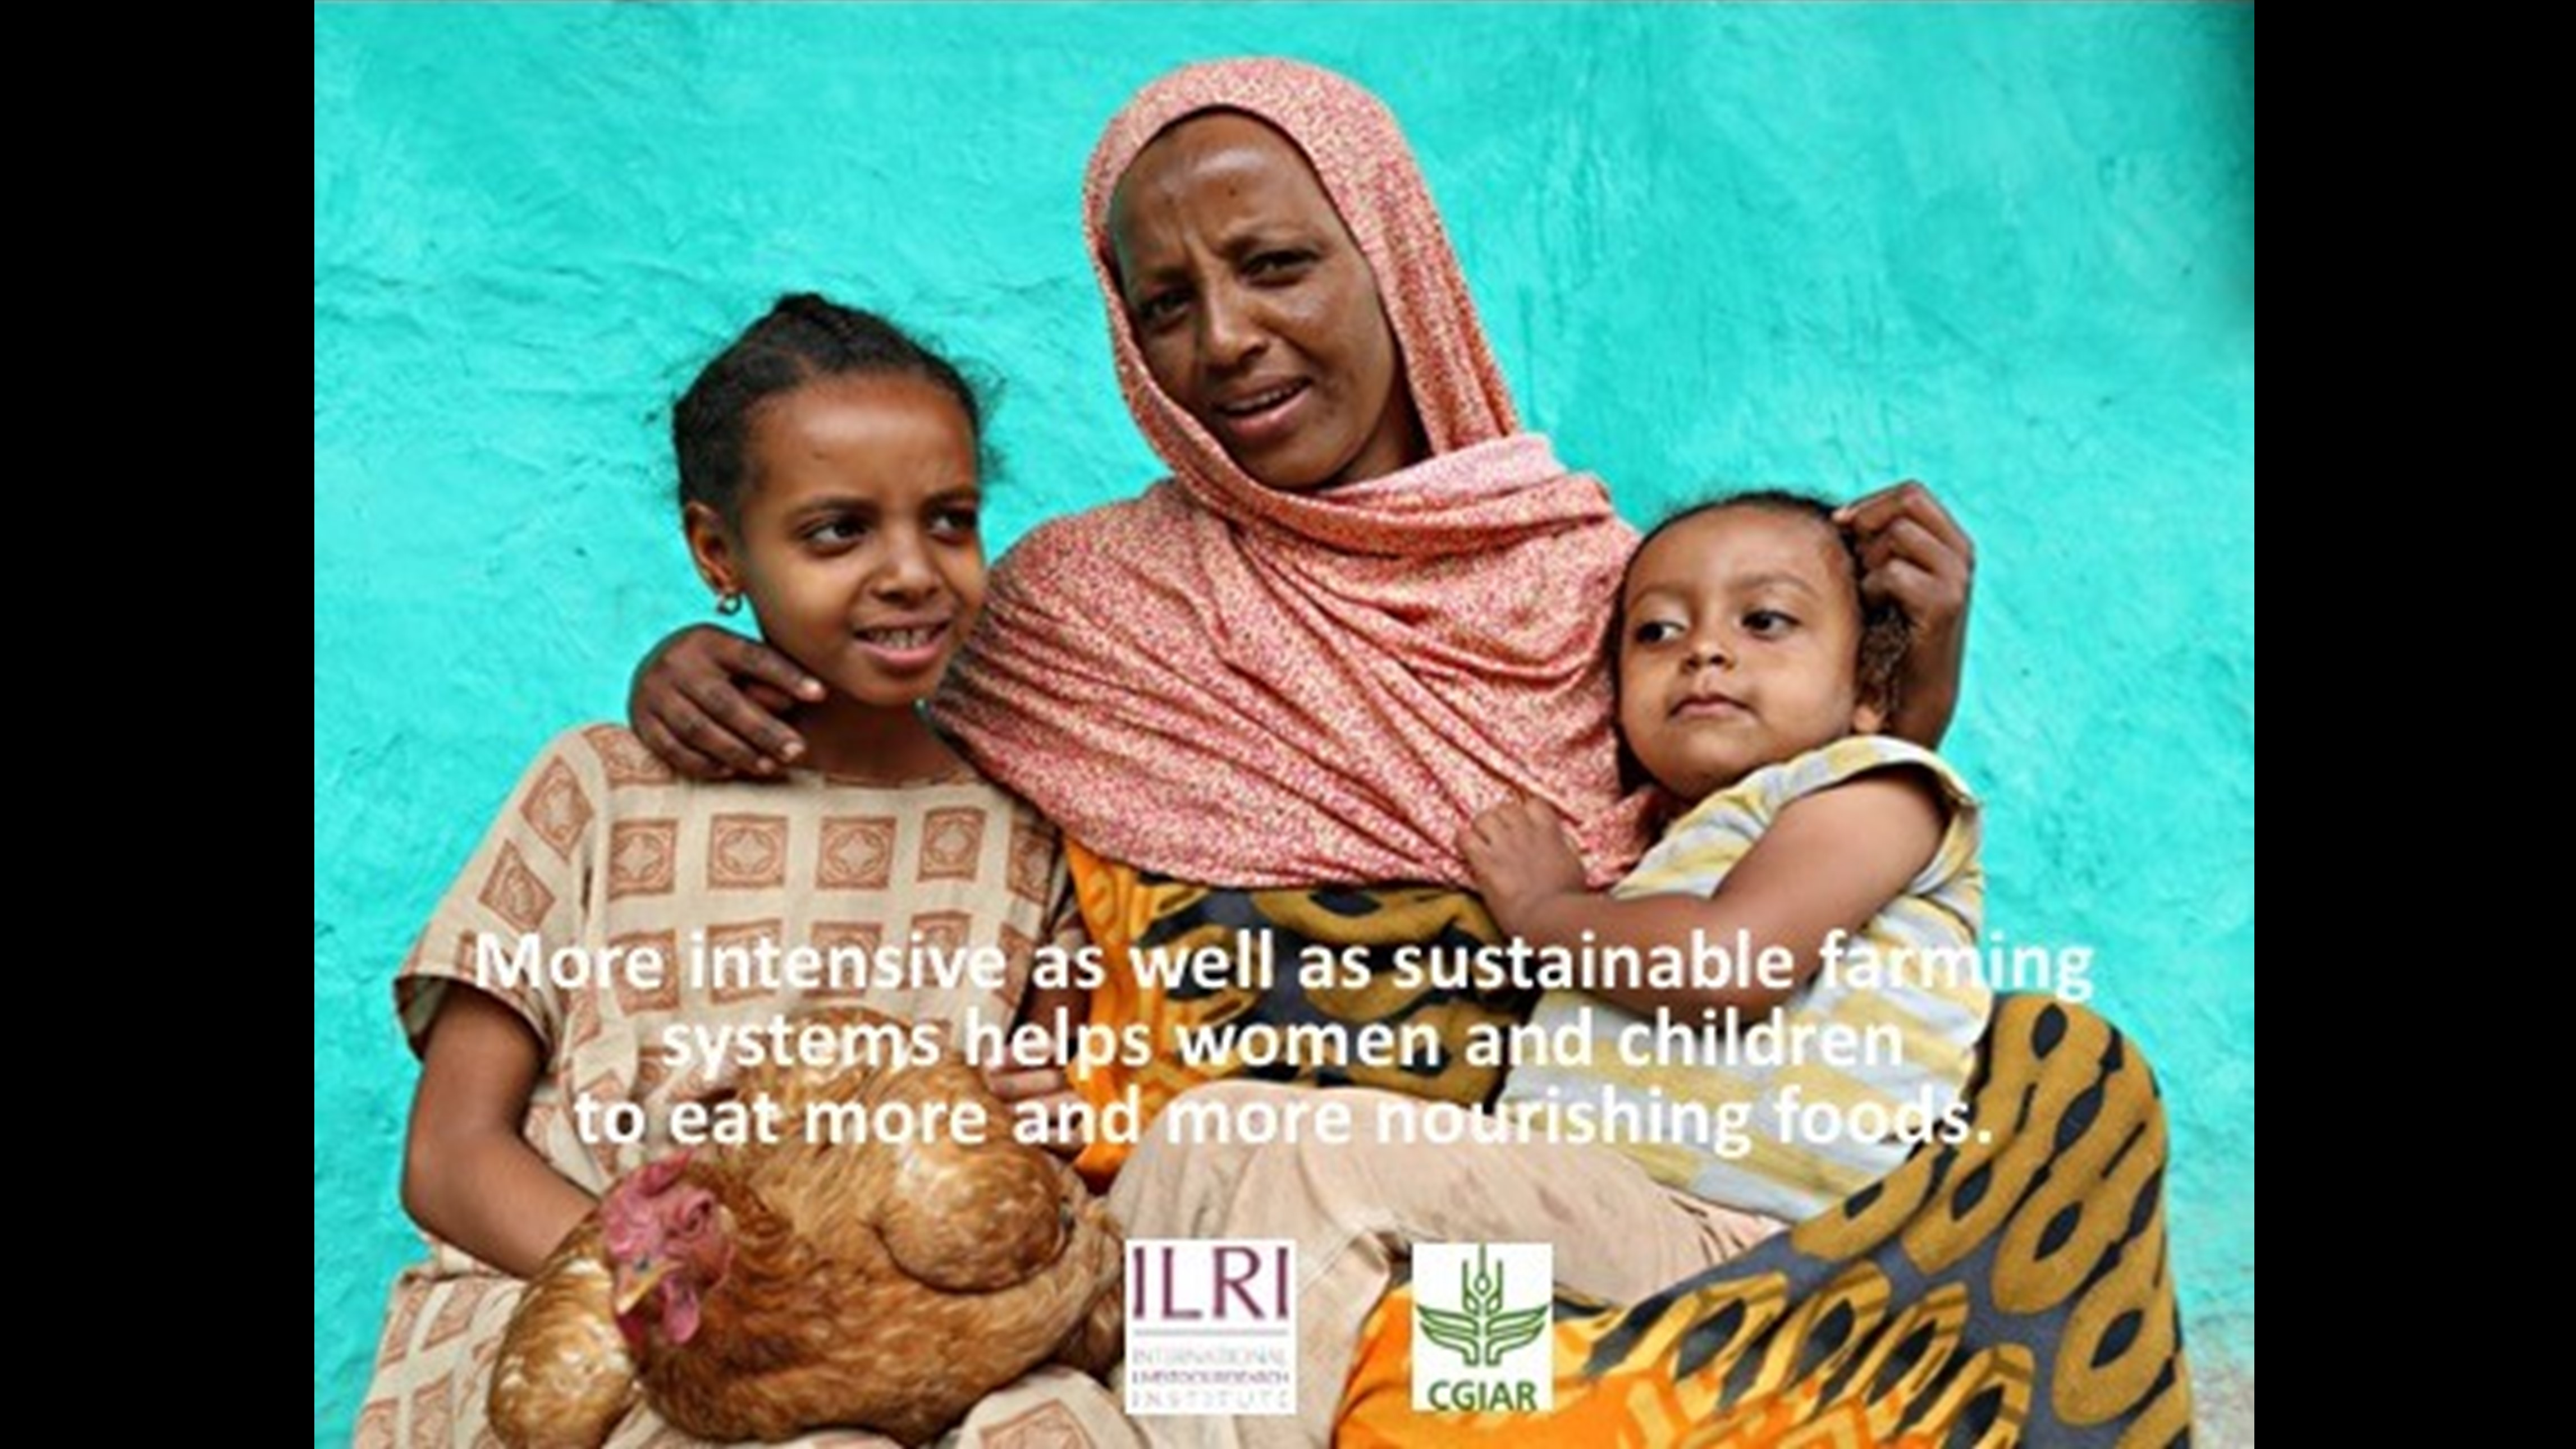 Intensive and Sustainable Farming Systems Help Women and Children